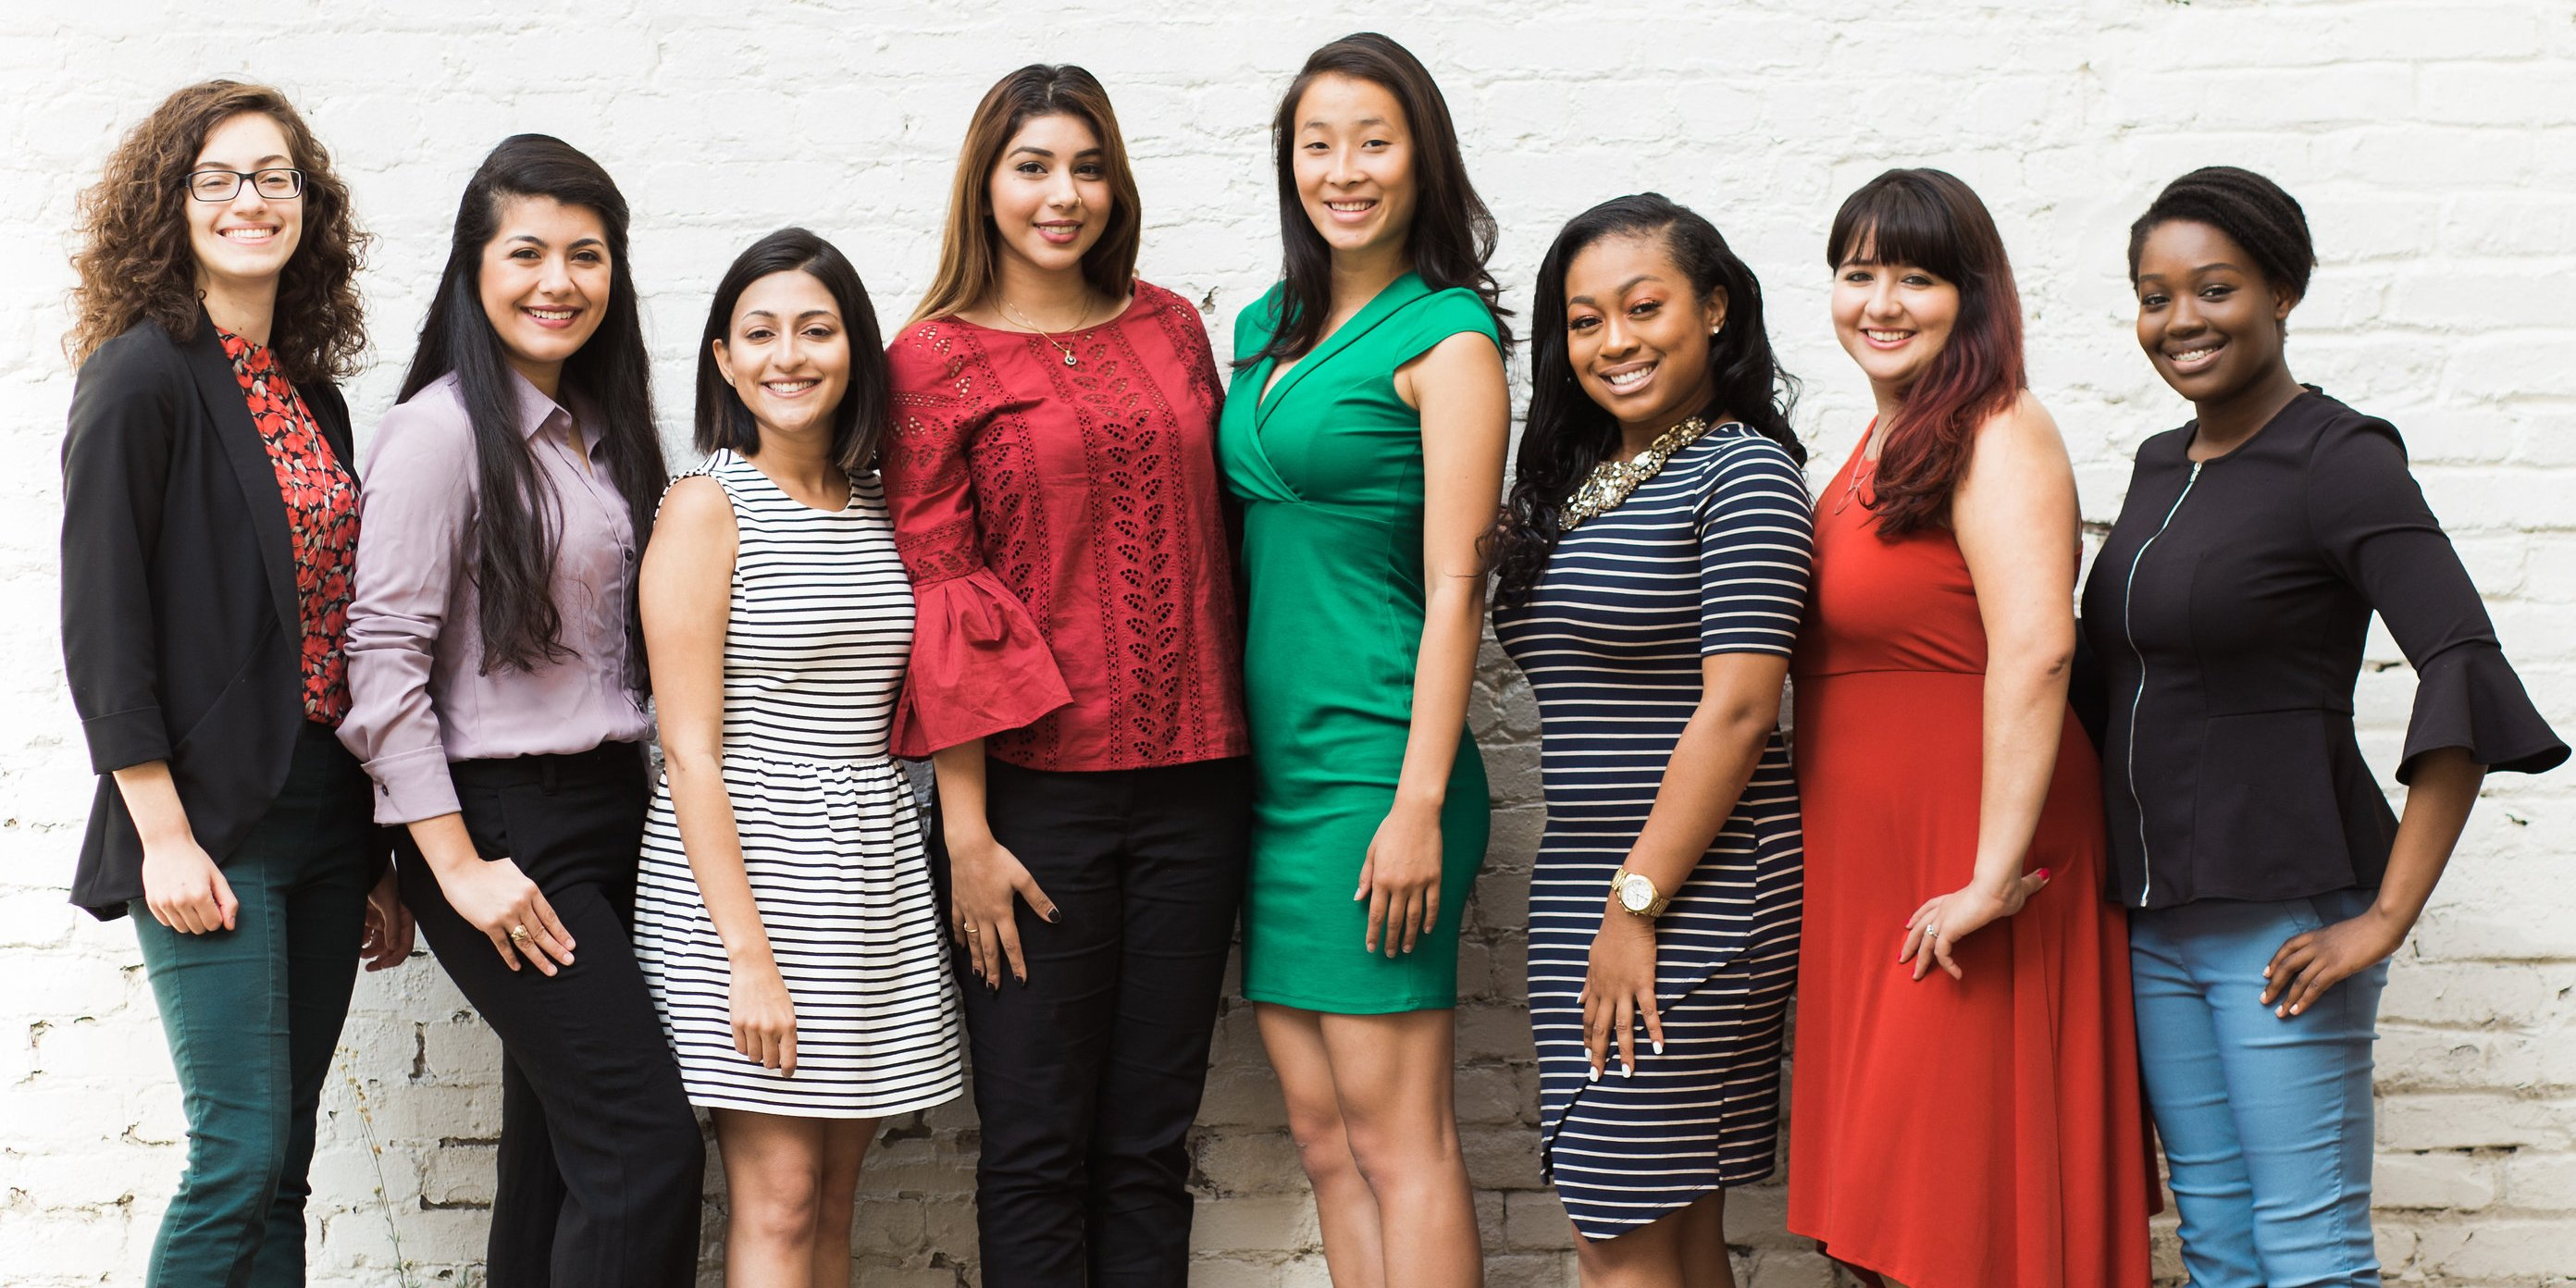 Meet the 2nd cohort of IGNITE Fellows.